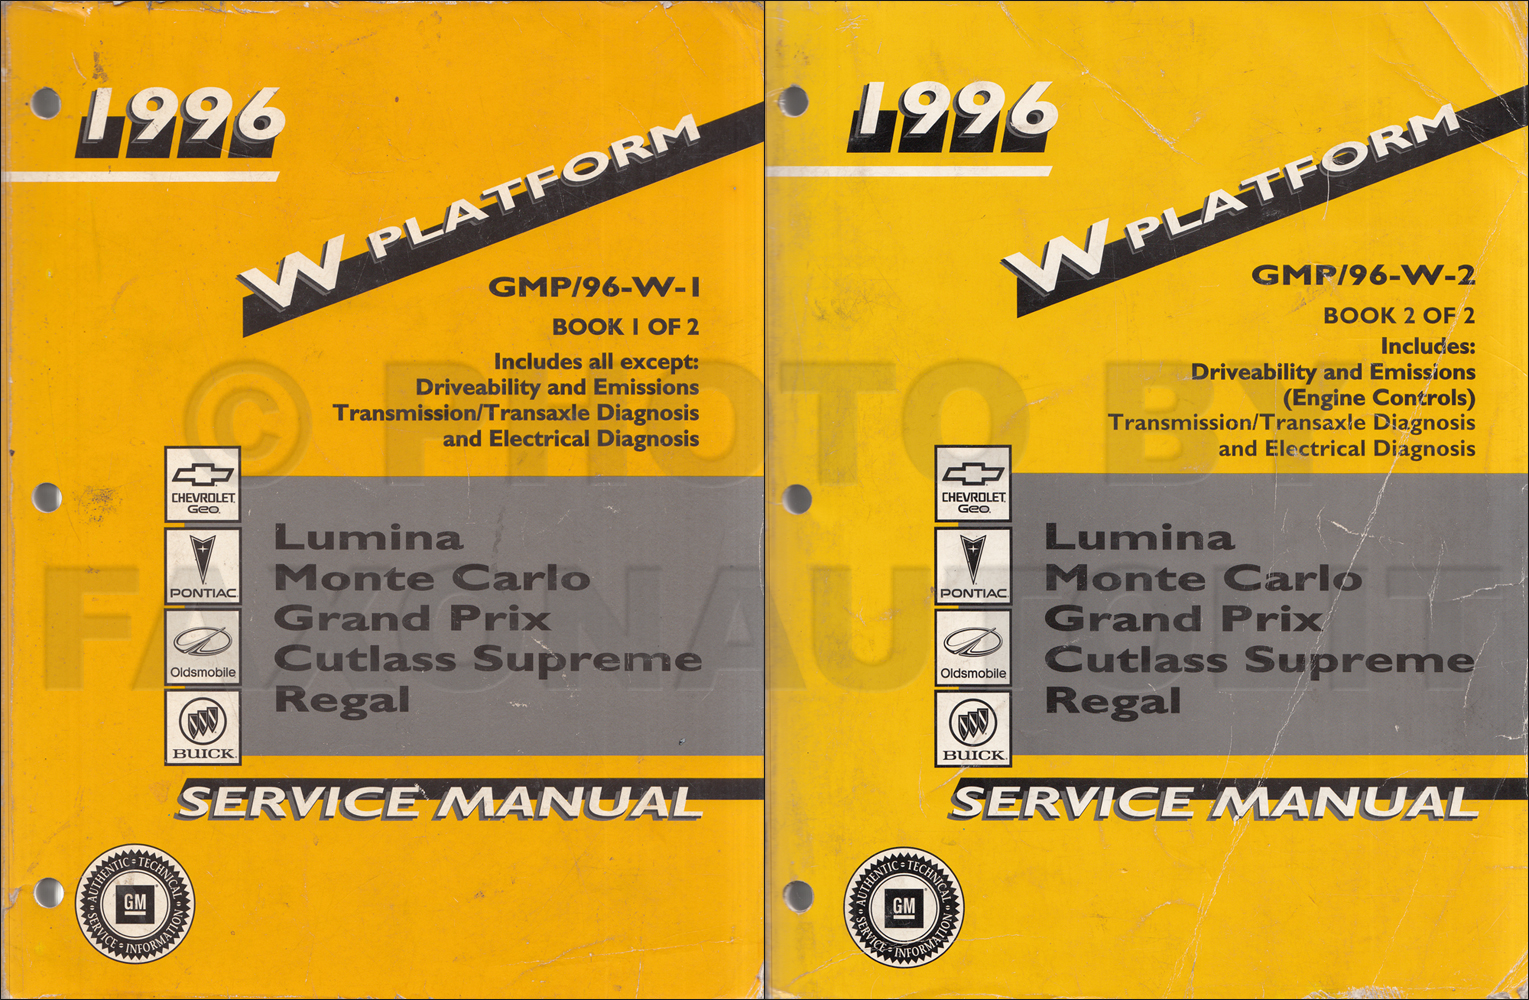 1996 Lumina Monte Carlo Grand Prix Cutlass Supreme Regal Repair Shop Manual